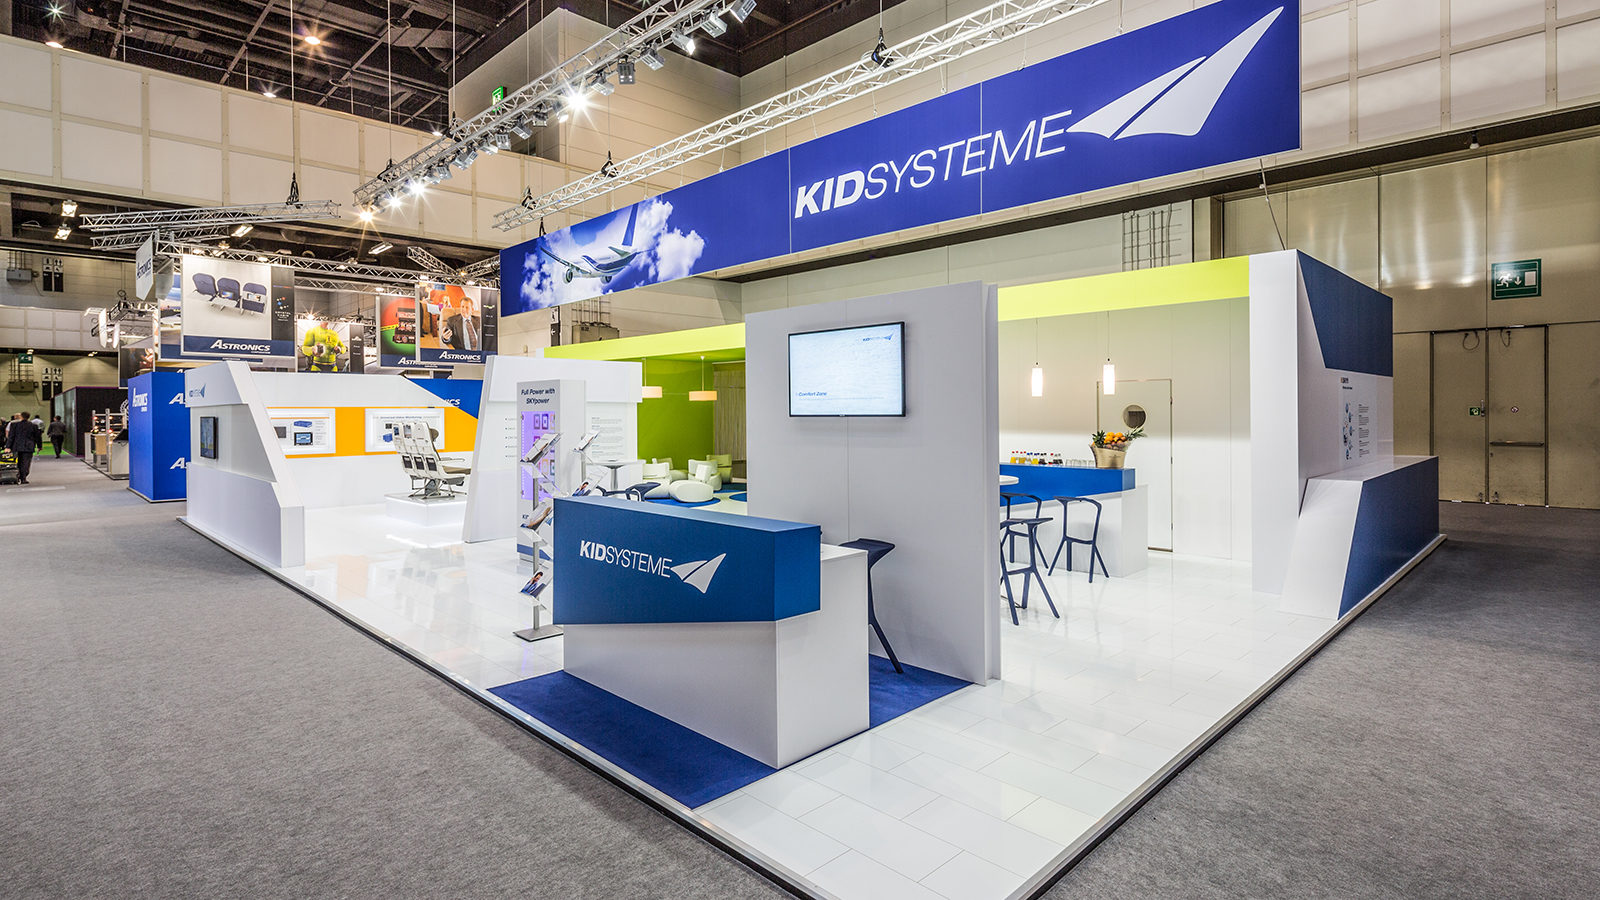 KID Systeme<br>200 sqm<br>Aircraft Interiors Expo